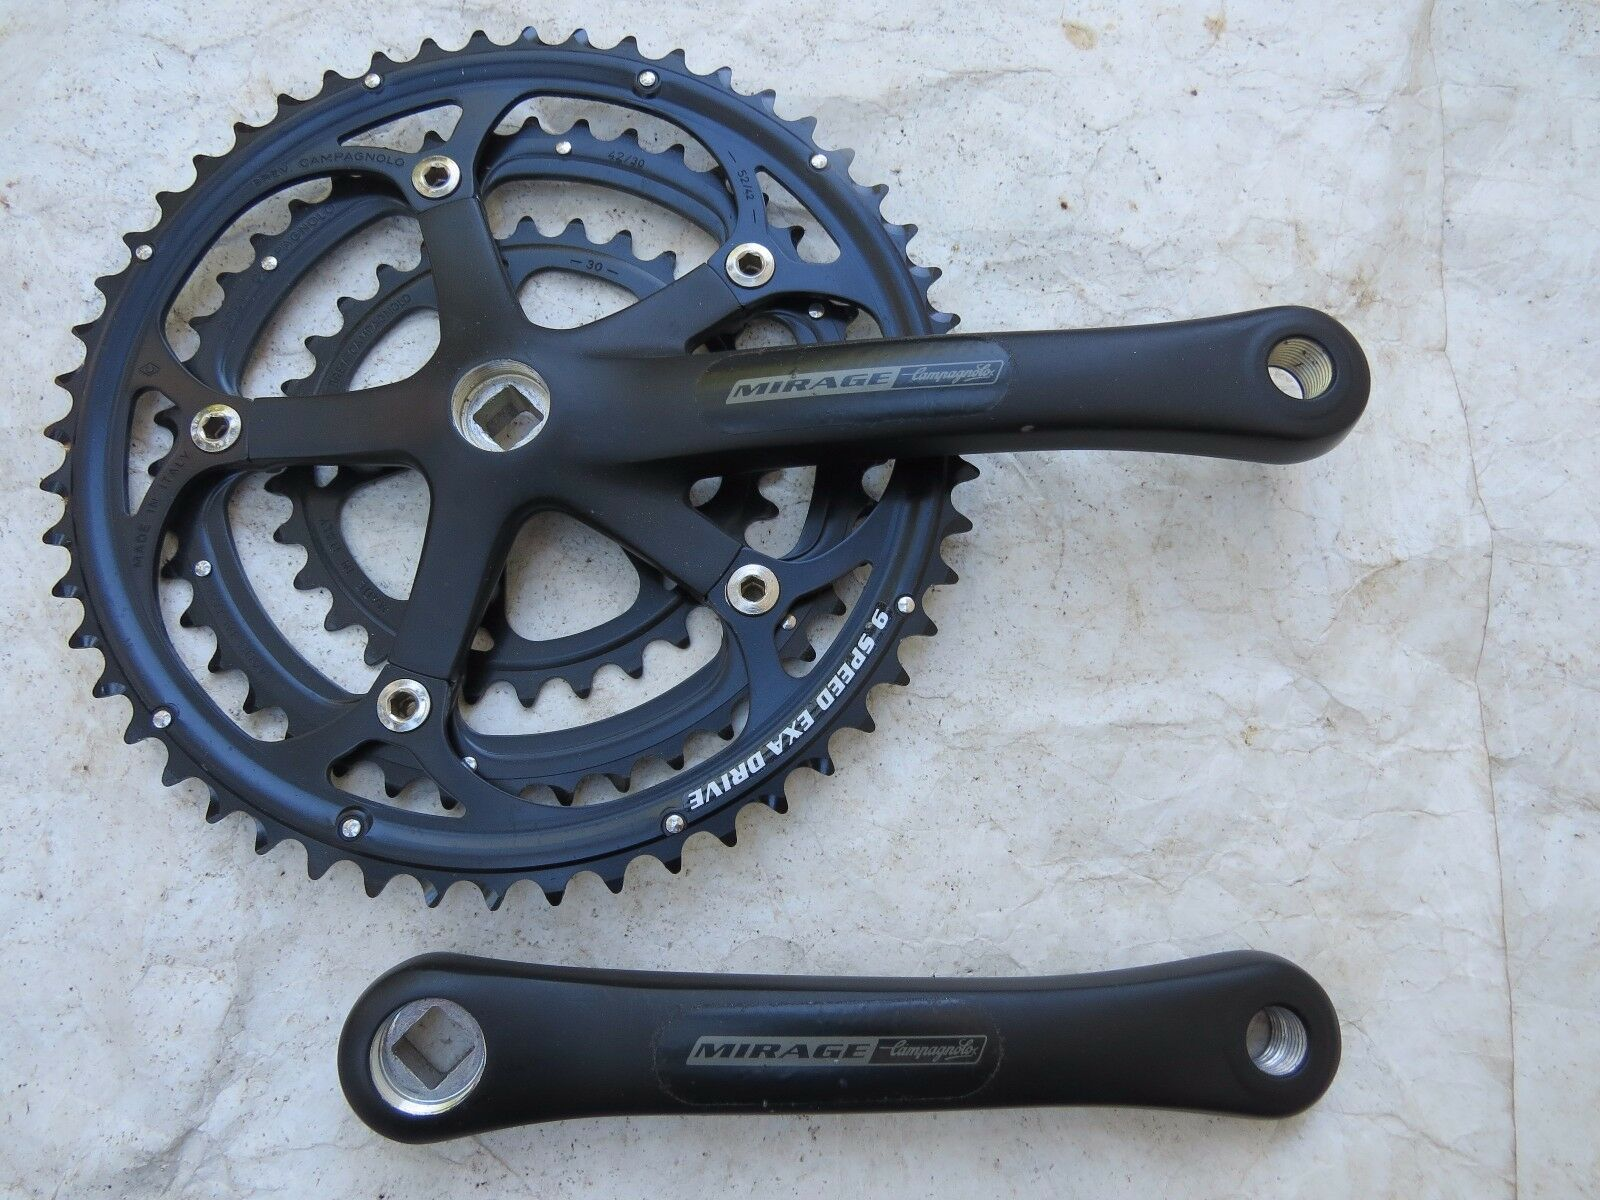 NEW 170 CAMPAGNOLO 9 SPEED TRIPLE 30 42 52  MIRAGE CRANK SET ROAD TOURING